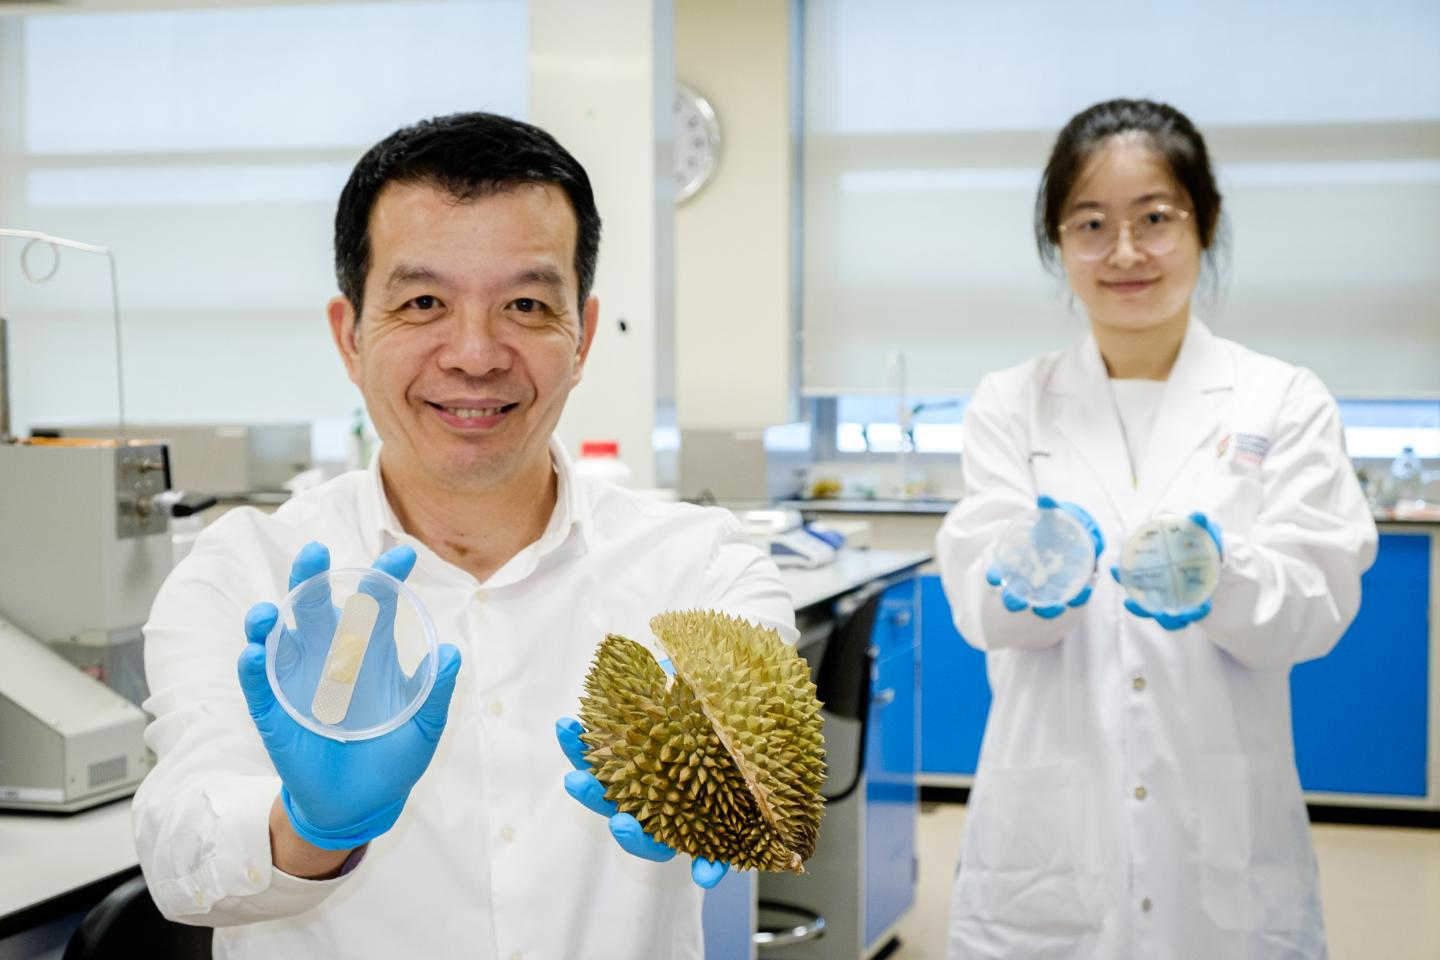 Prof. William Chen (left) holds up one of the hydrogel bandages and a durian husk, while PhD student Cui Xi displays agar plates showing the dressing's antibacterial effect